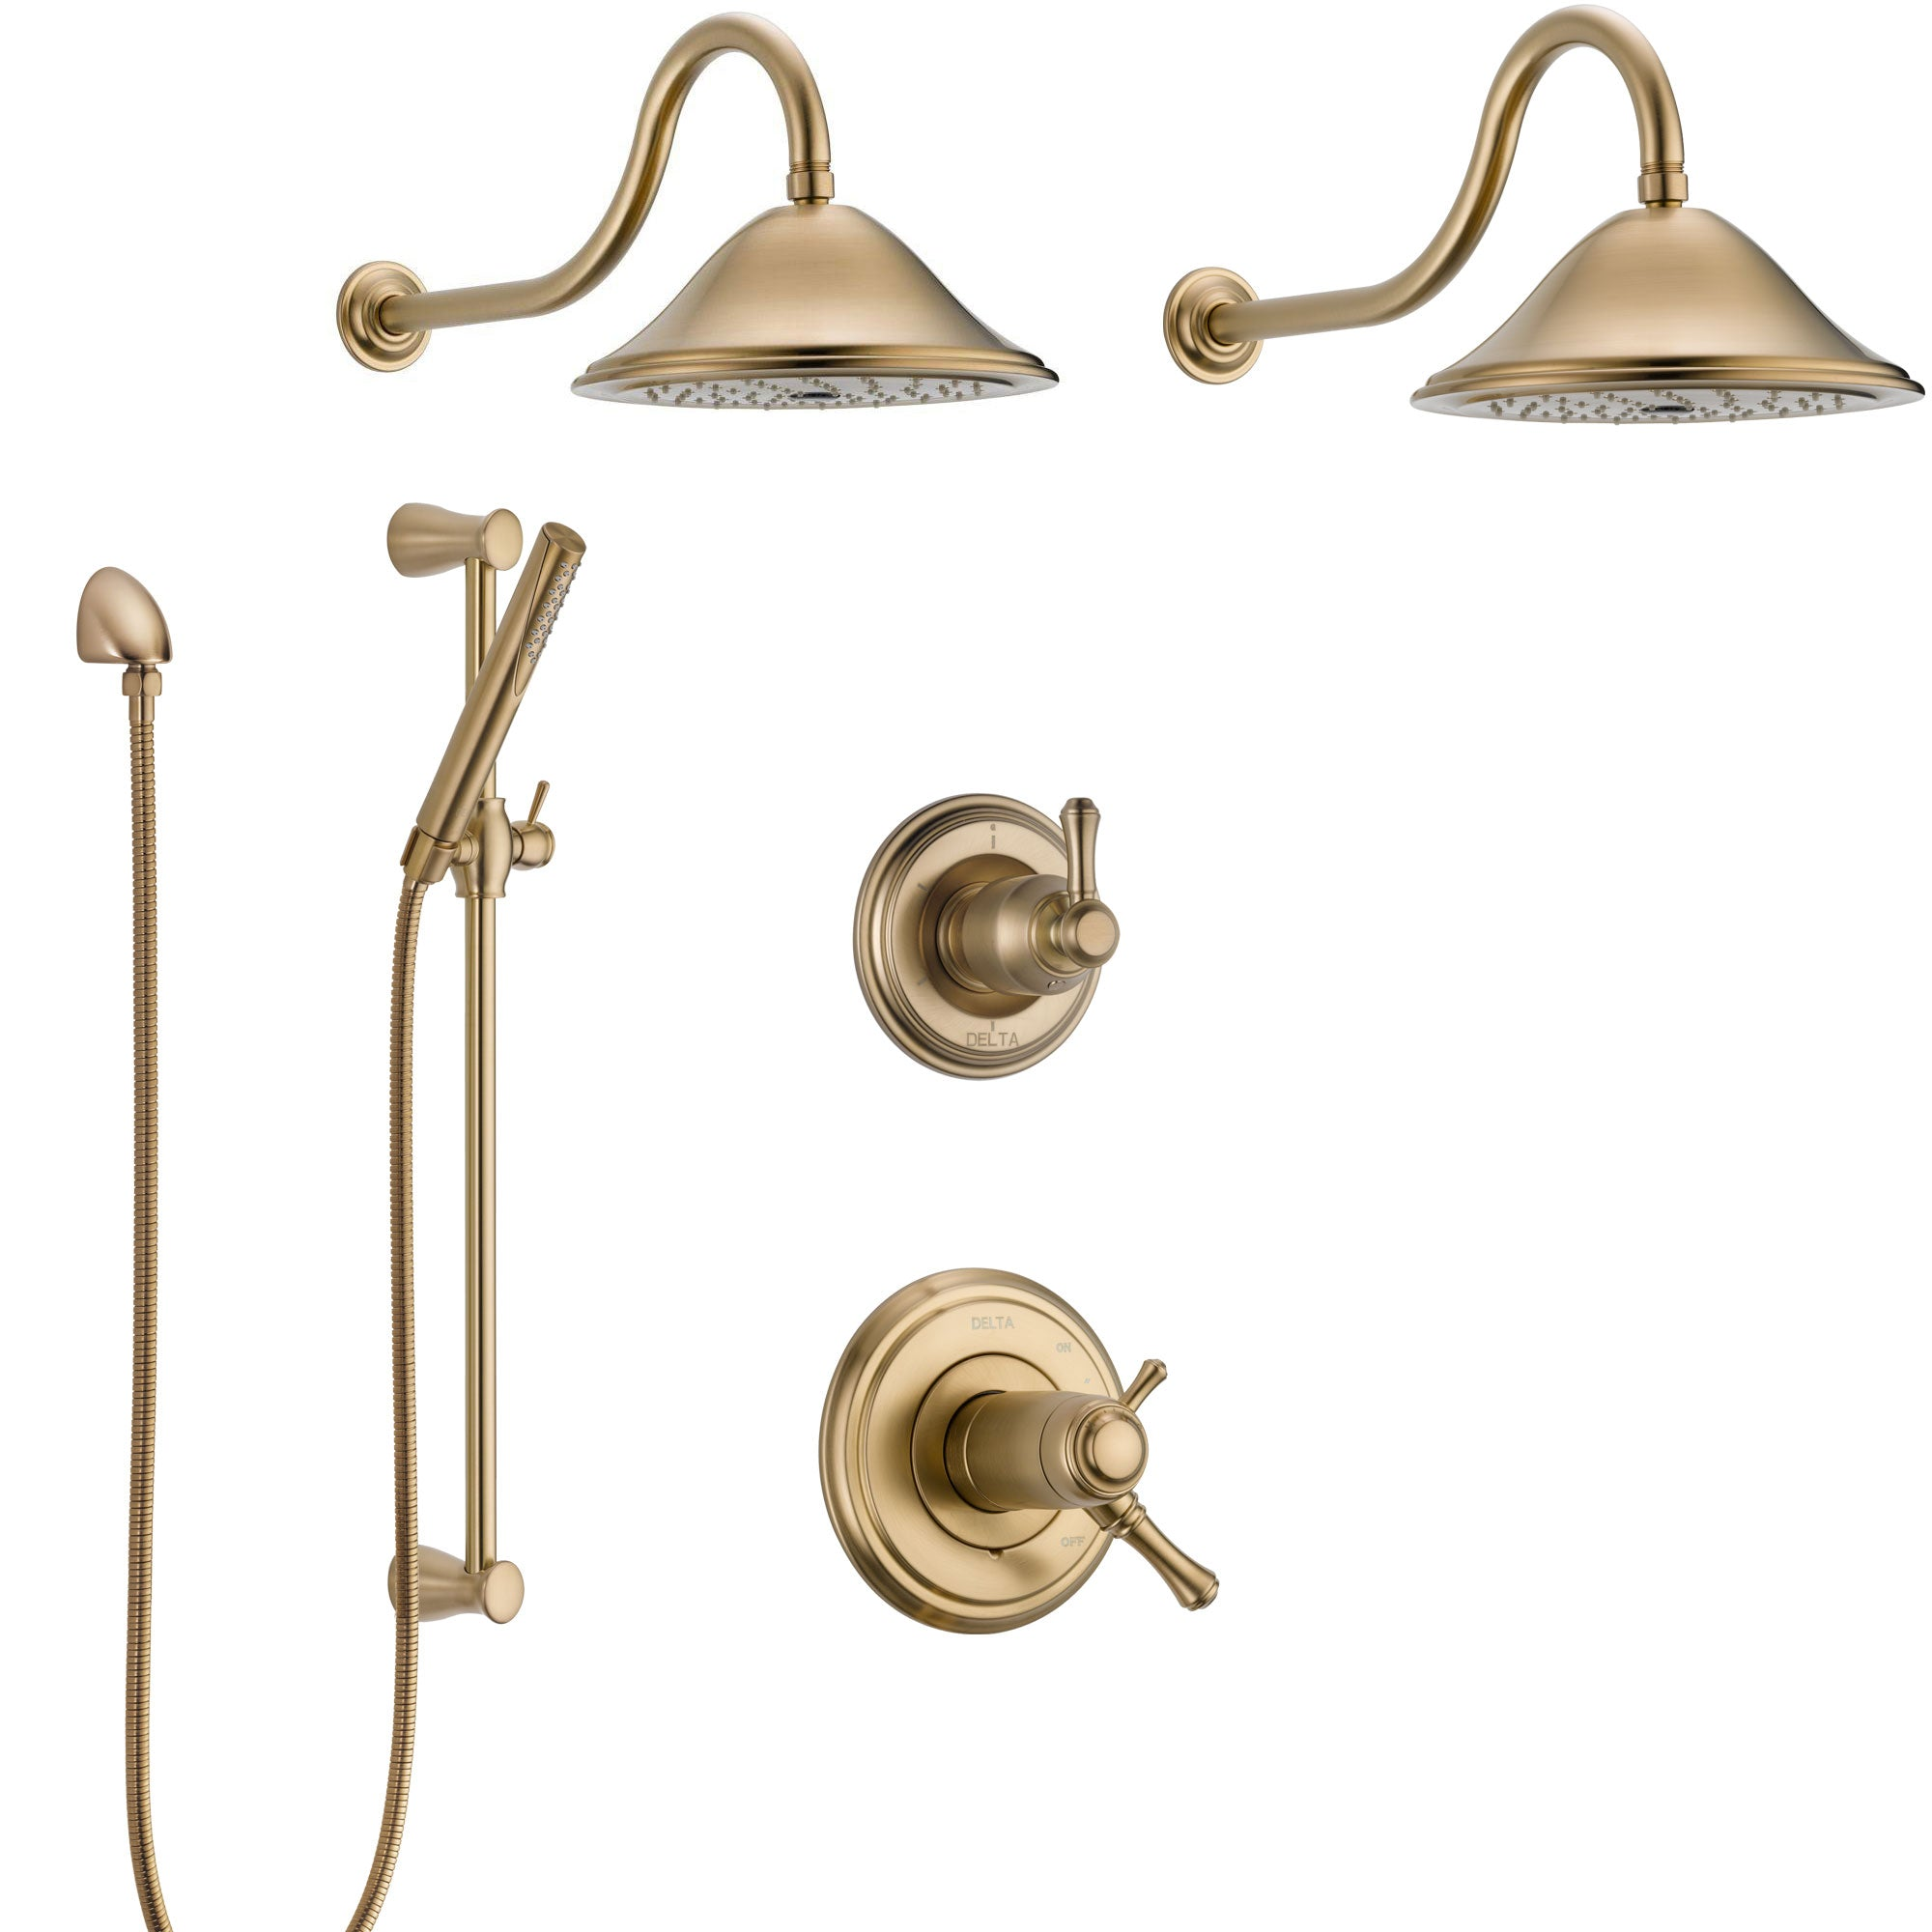 Delta Cassidy Champagne Bronze Shower System with Dual Thermostatic Control Handle, 6-Setting Diverter, 2 Showerheads, Hand Shower SS17T2972CZ3